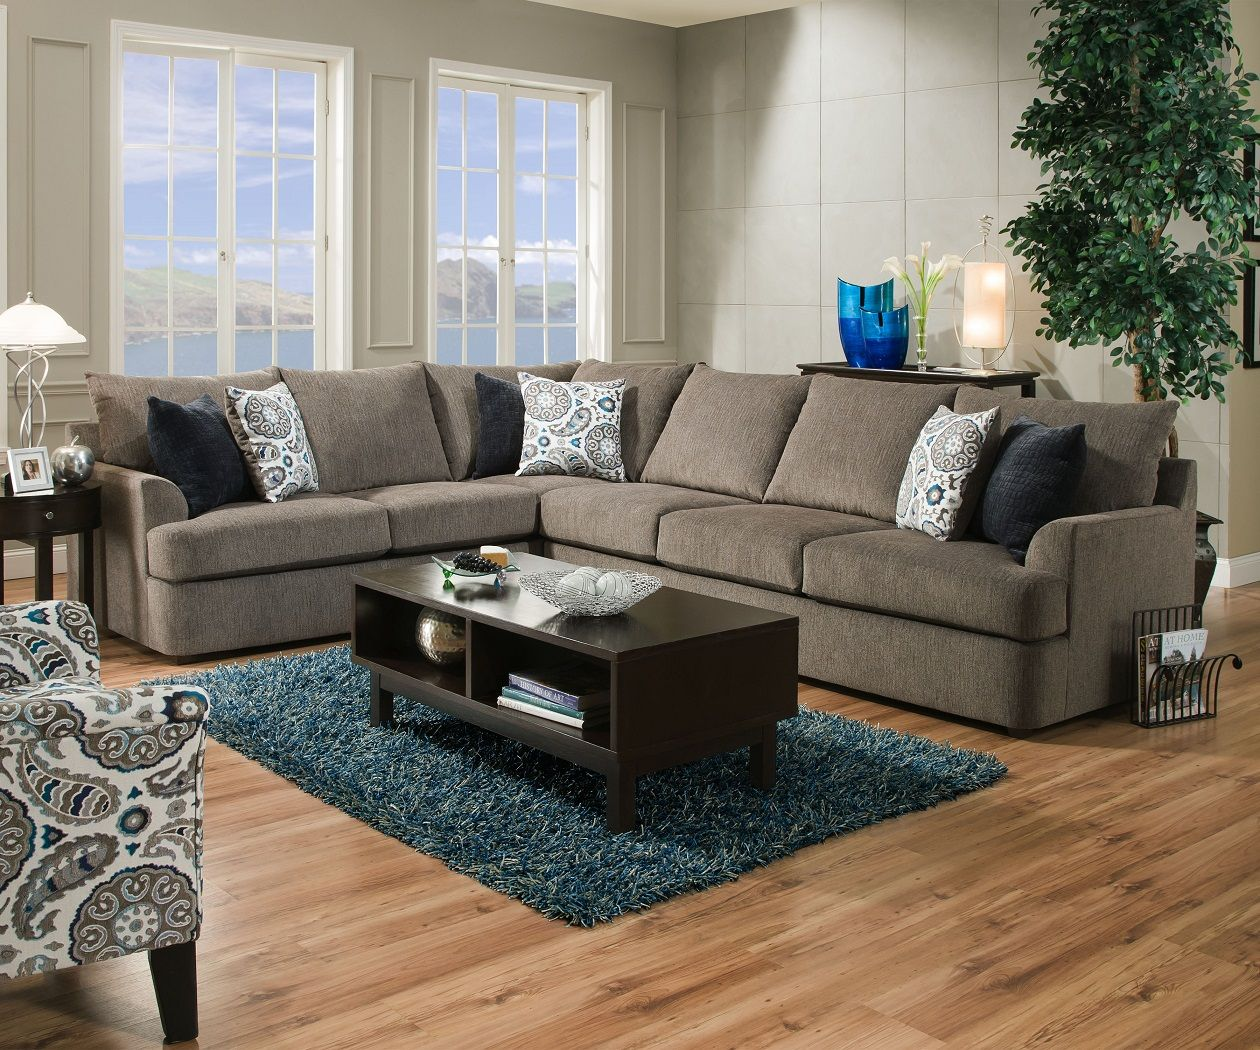 Grandstand 8540 Simmons Beautyrest Sectional Sofa Sectional Sofa Grey Sectional Sofa Furniture